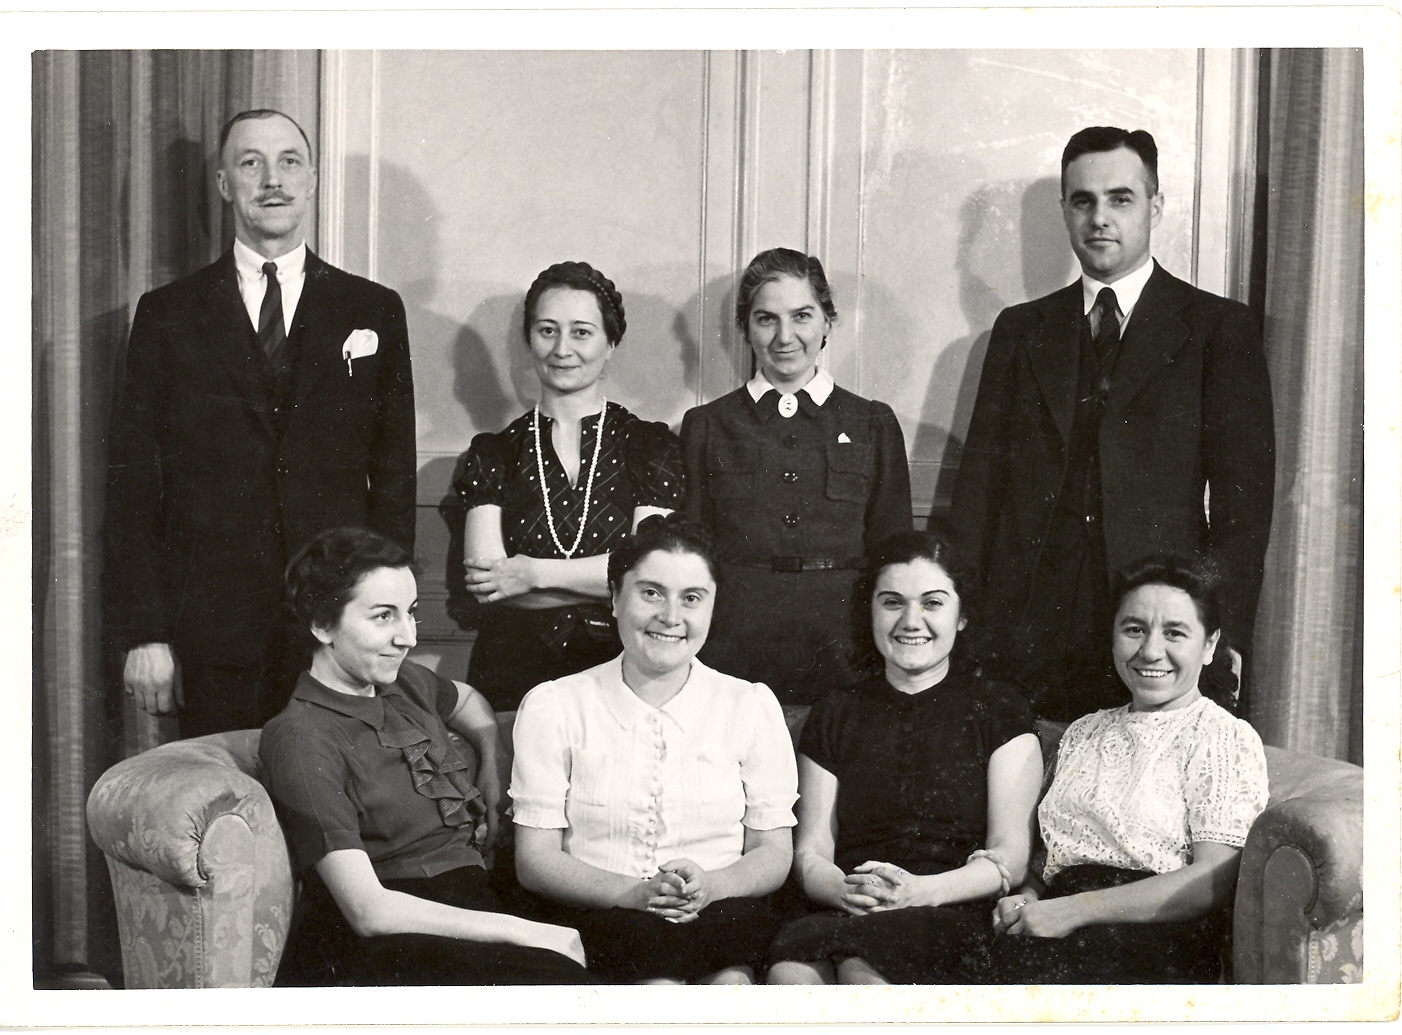 Nicholas Artamonoff (back, far right) with other members of the faculty and staff of Robert College.